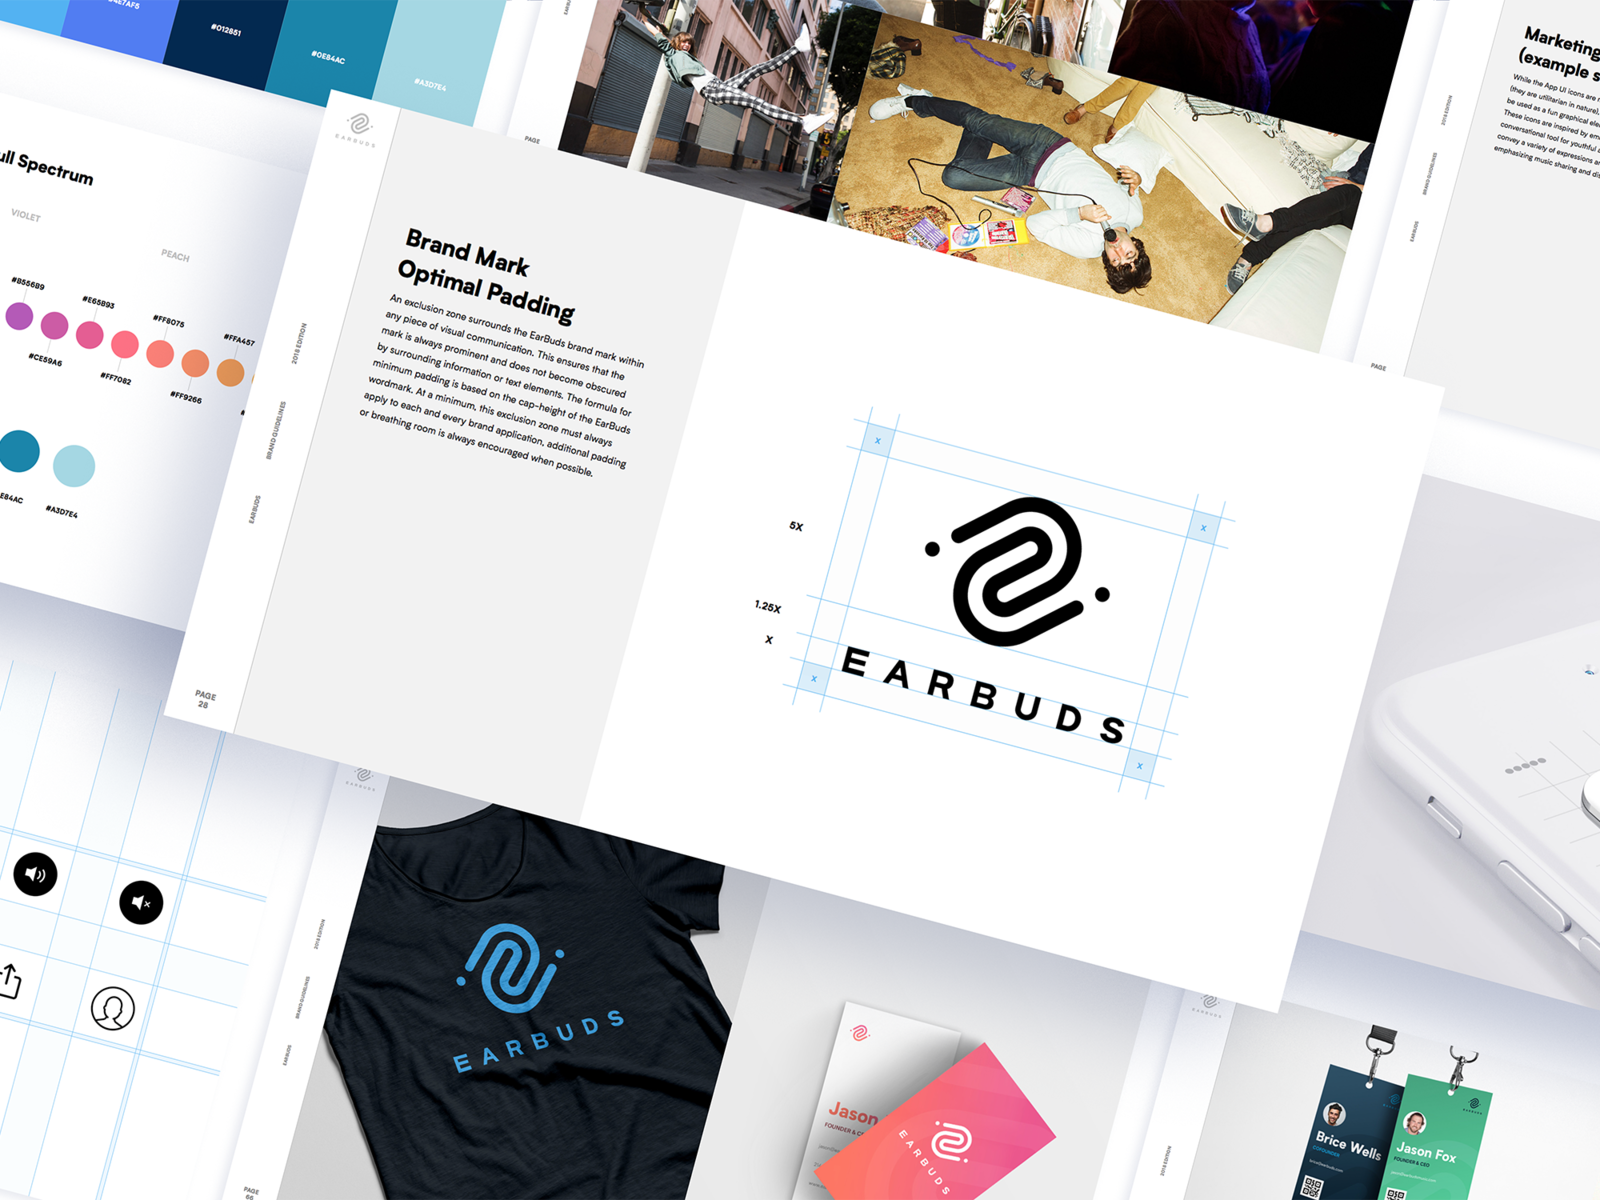 EarBuds Brand Guidelines by Brad Burke for I D O L on Dribbble